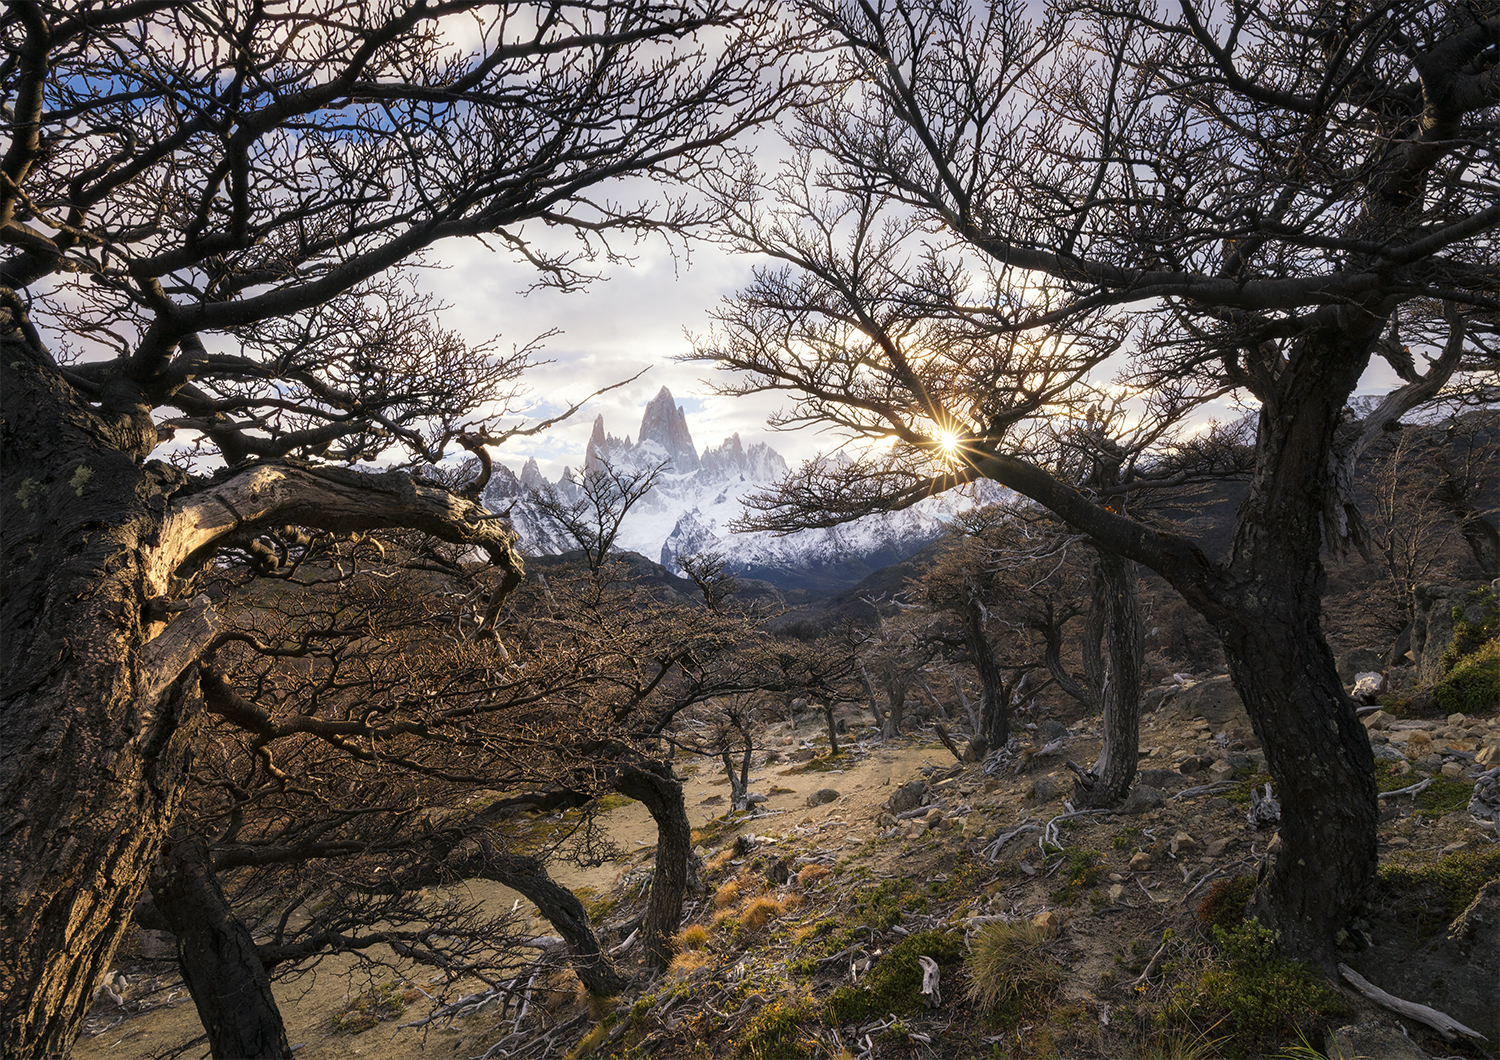 Through the trees, Fitzroy in Patagonia